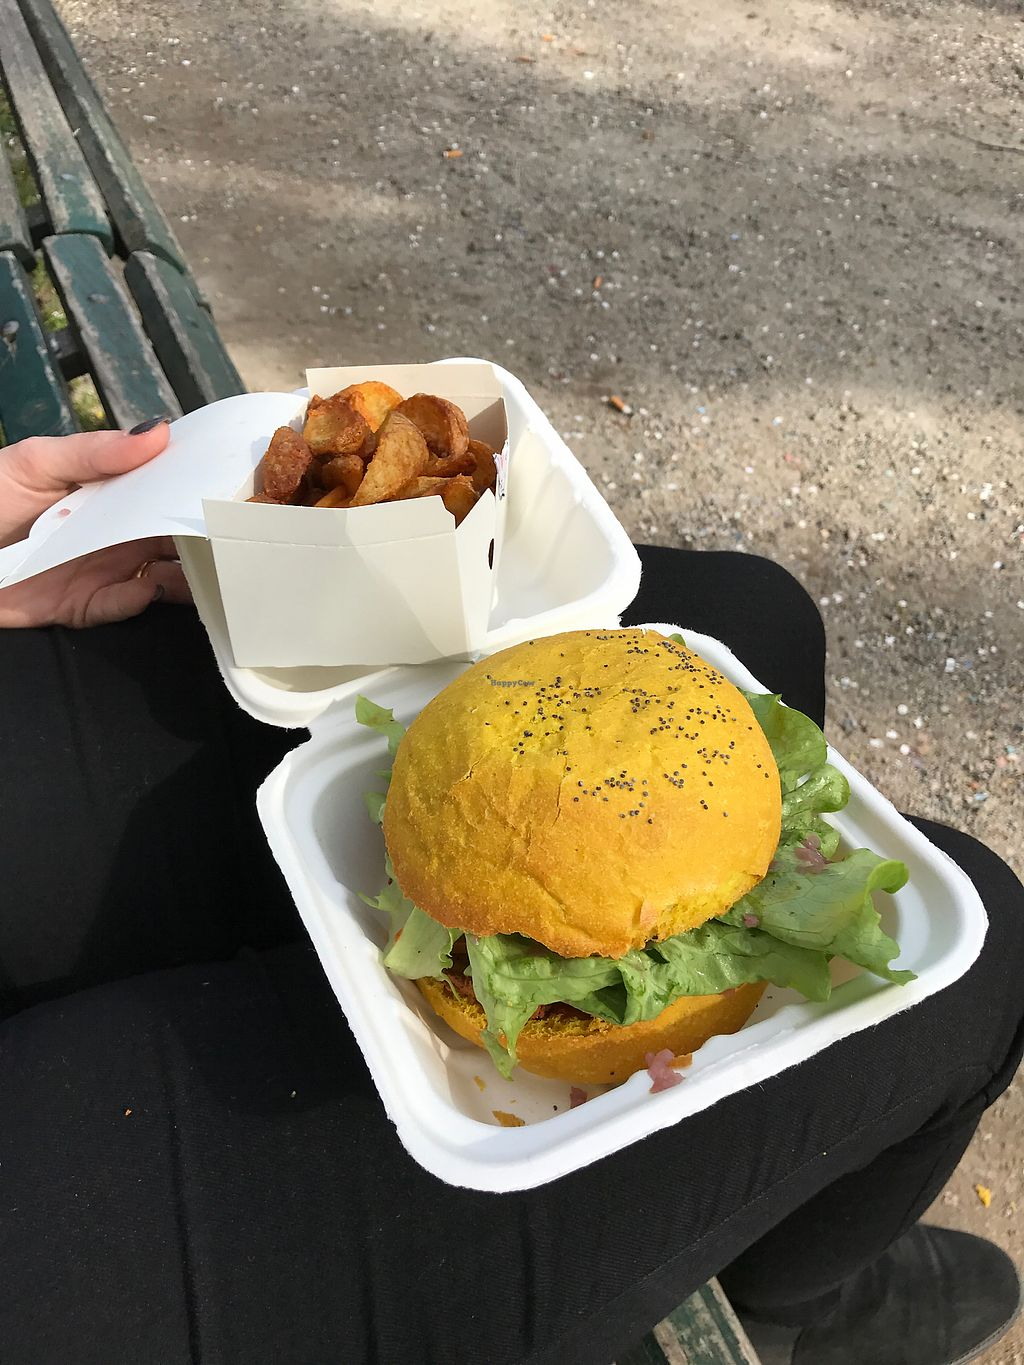 """Photo of Flower Burger  by <a href=""""/members/profile/WeDesign"""">WeDesign</a> <br/>! <br/> July 7, 2017  - <a href='/contact/abuse/image/64889/277594'>Report</a>"""